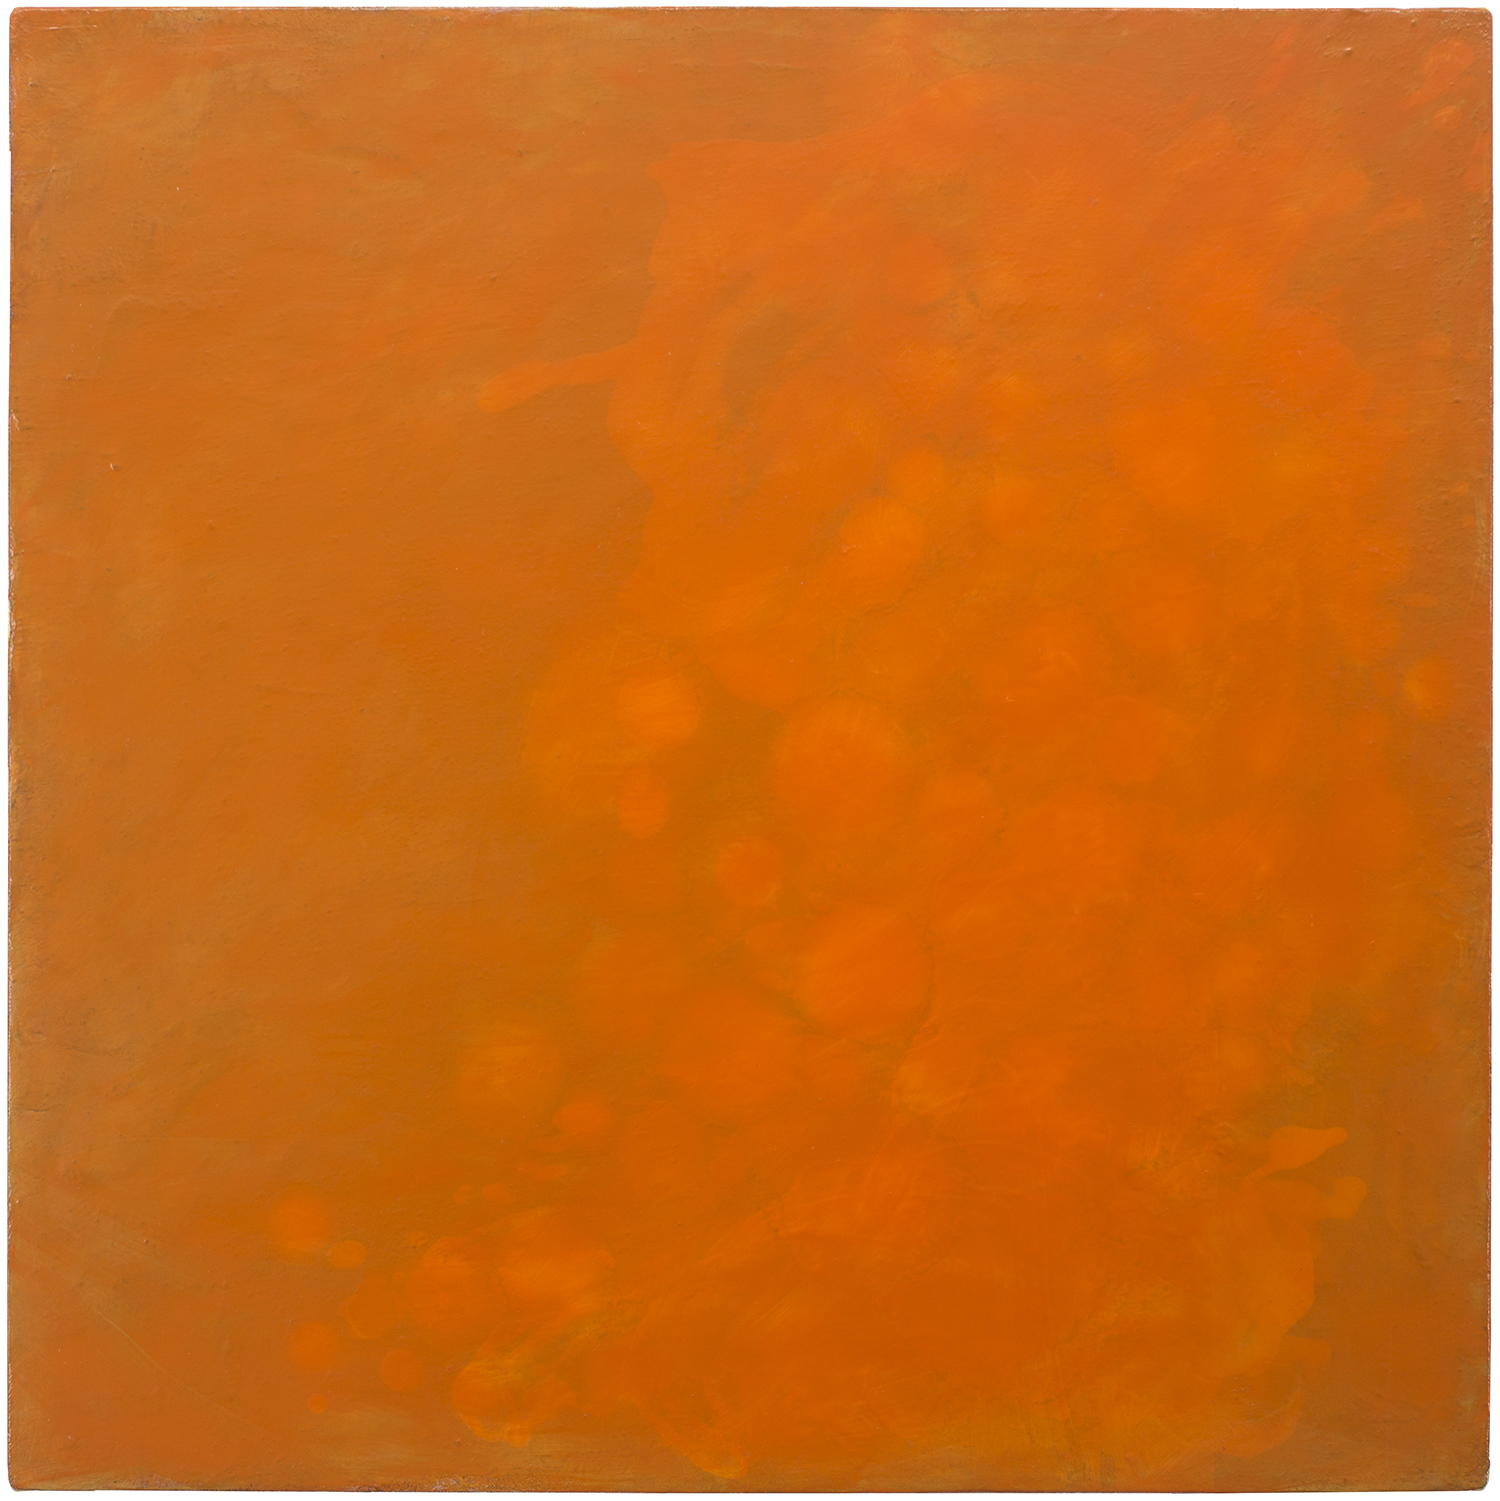 Untitled (orange), 2003